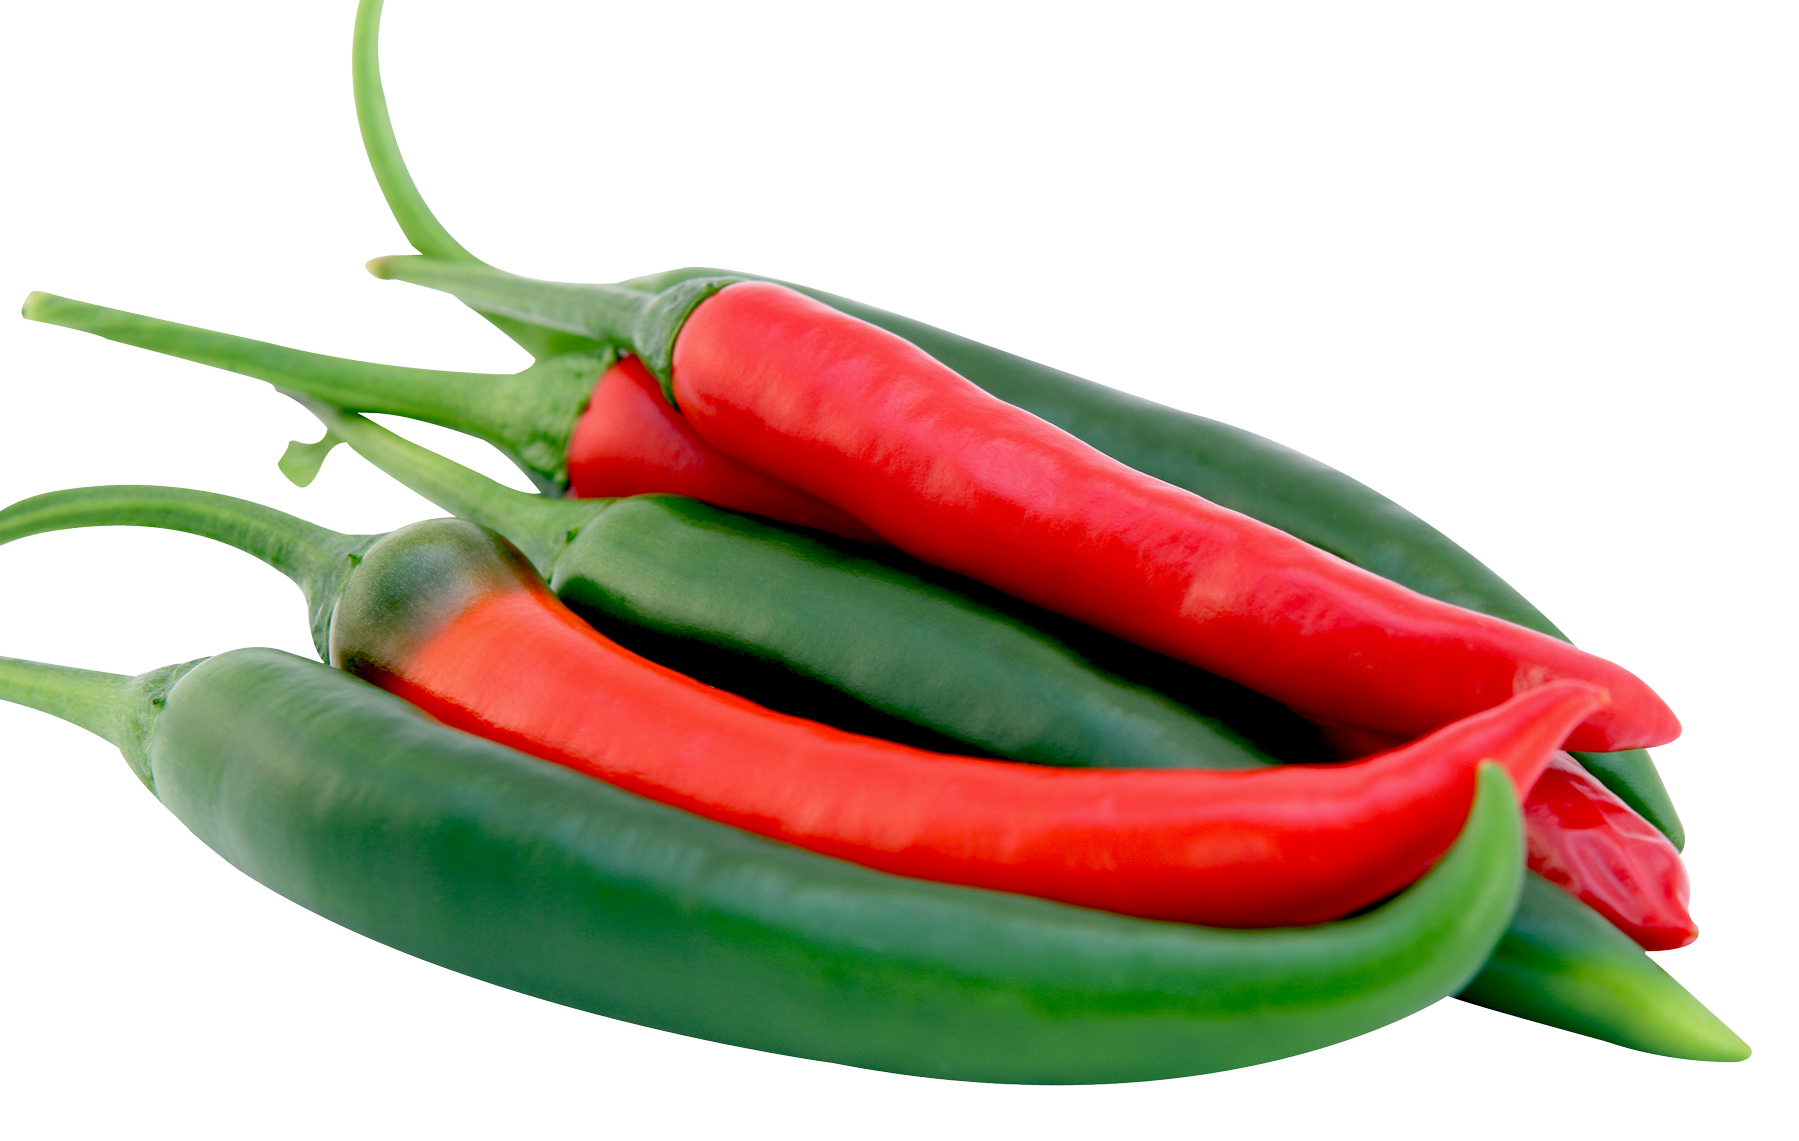 Red And Green Chilli Peppers Png Image Green Chilli Chilli Pepper Stuffed Peppers